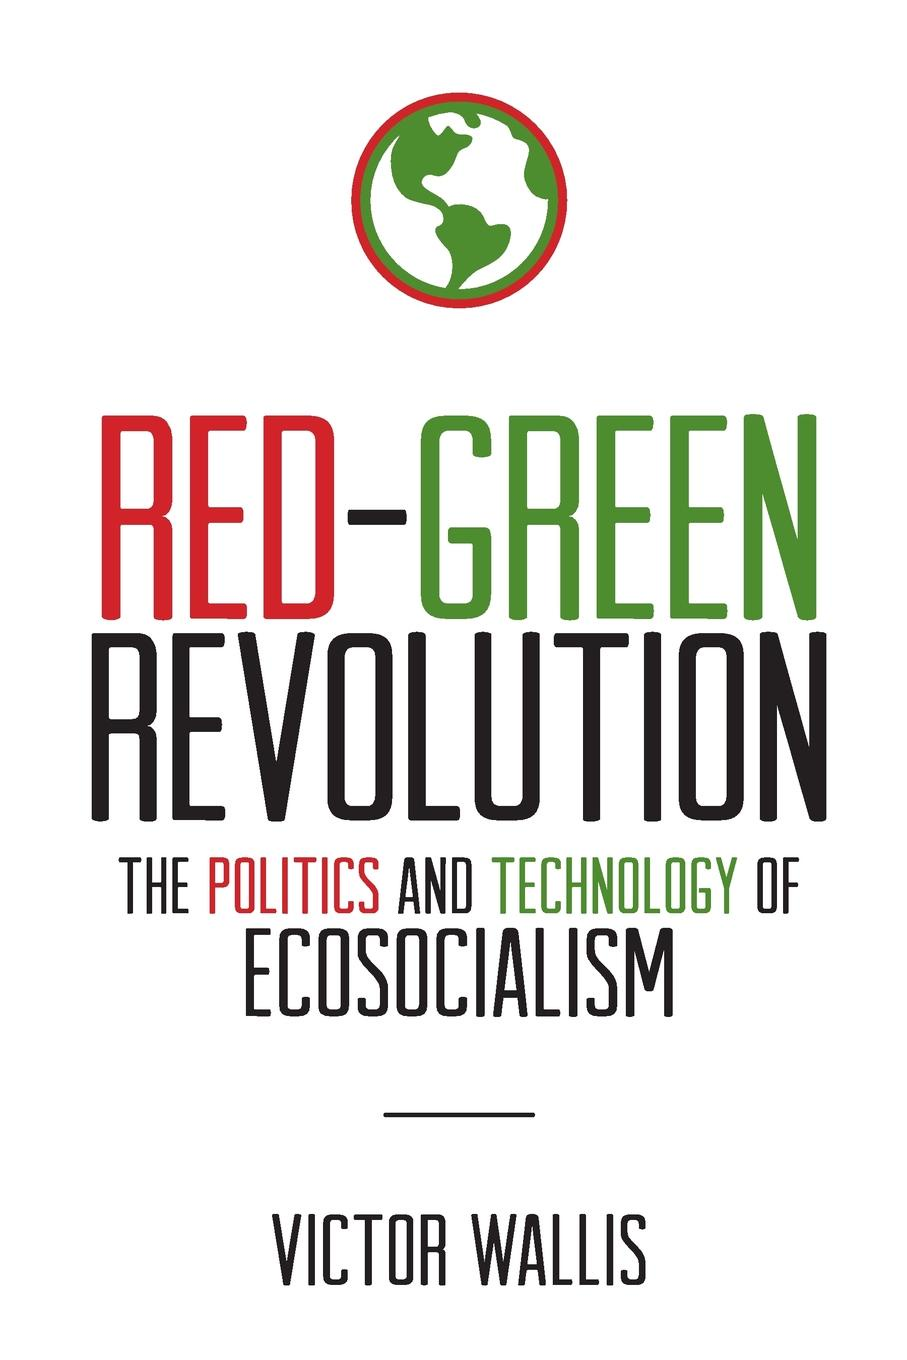 Victor Wallis. Red-Green Revolution. The Politics and Technology of Ecosocialism